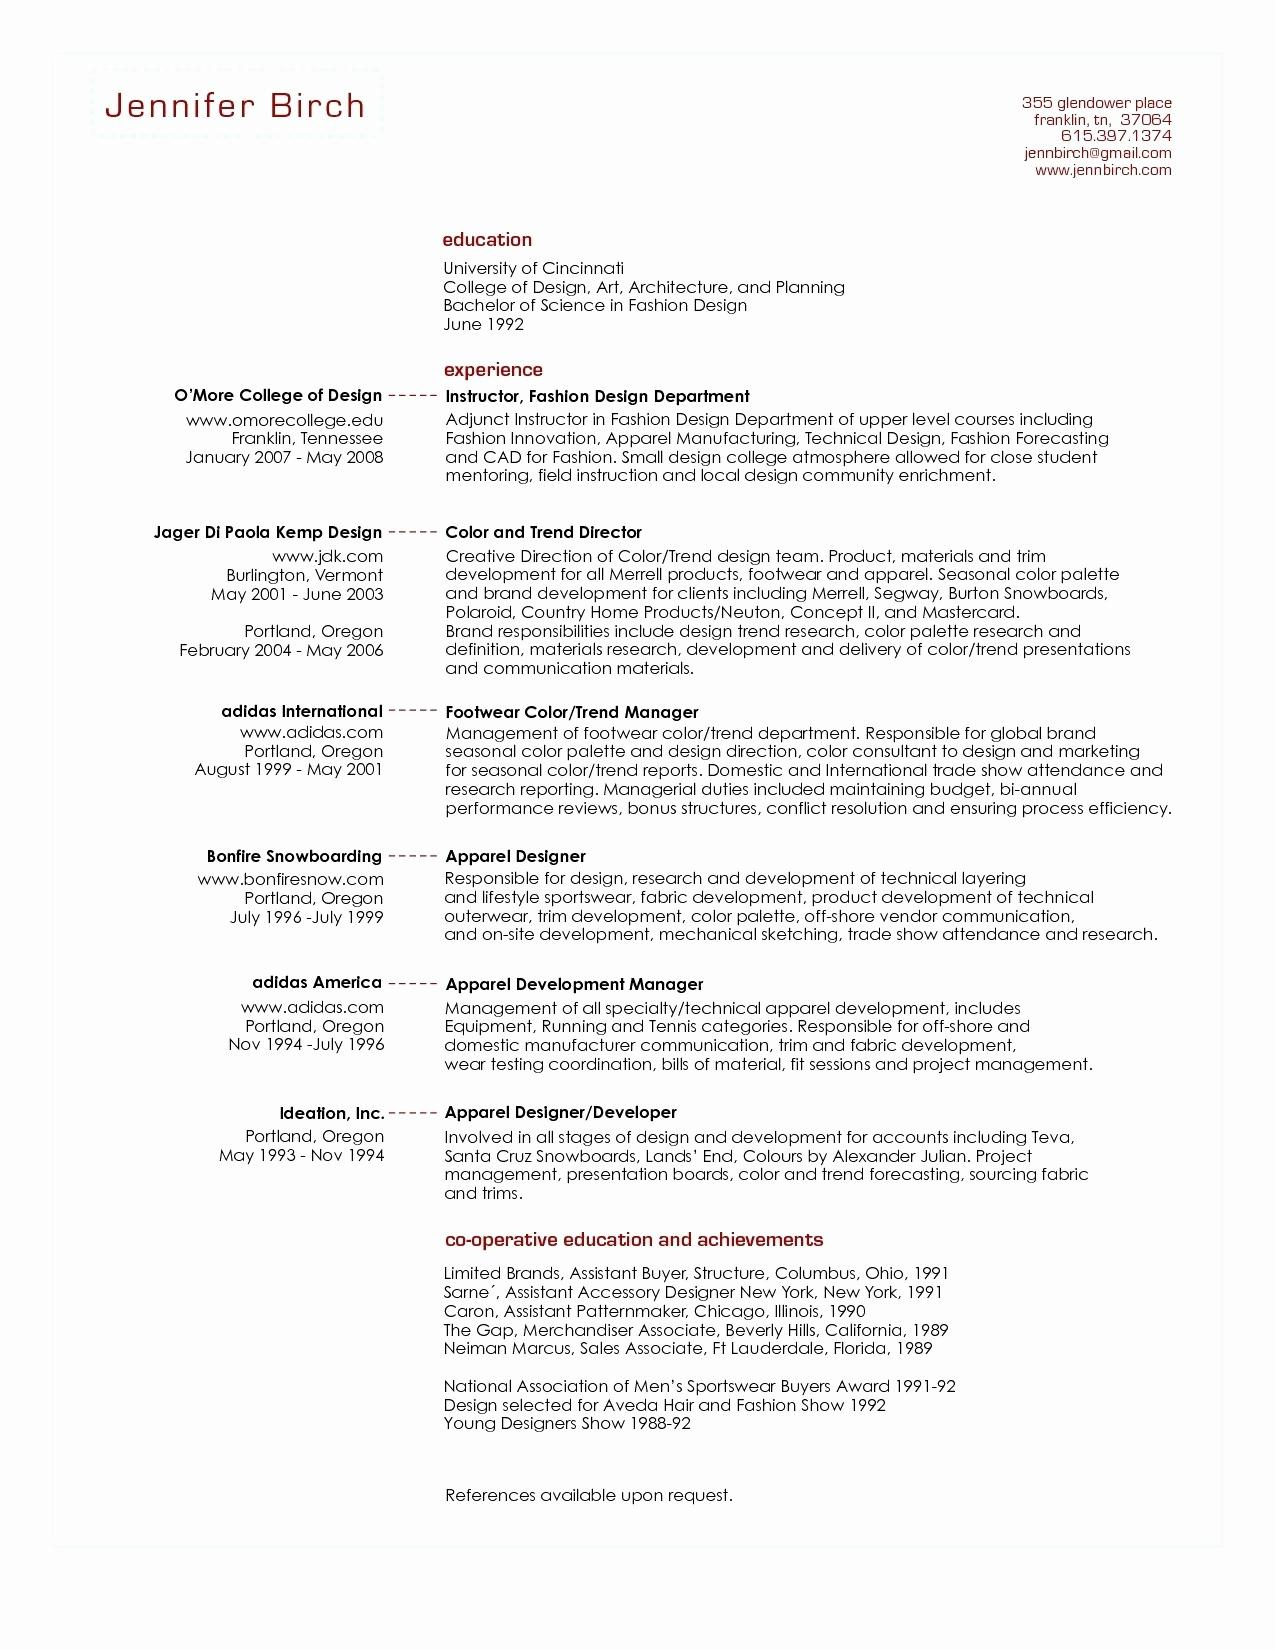 Free Dynamic Resume Templates - Resume format for Bba Graduates Luxury Law Student Resume Template